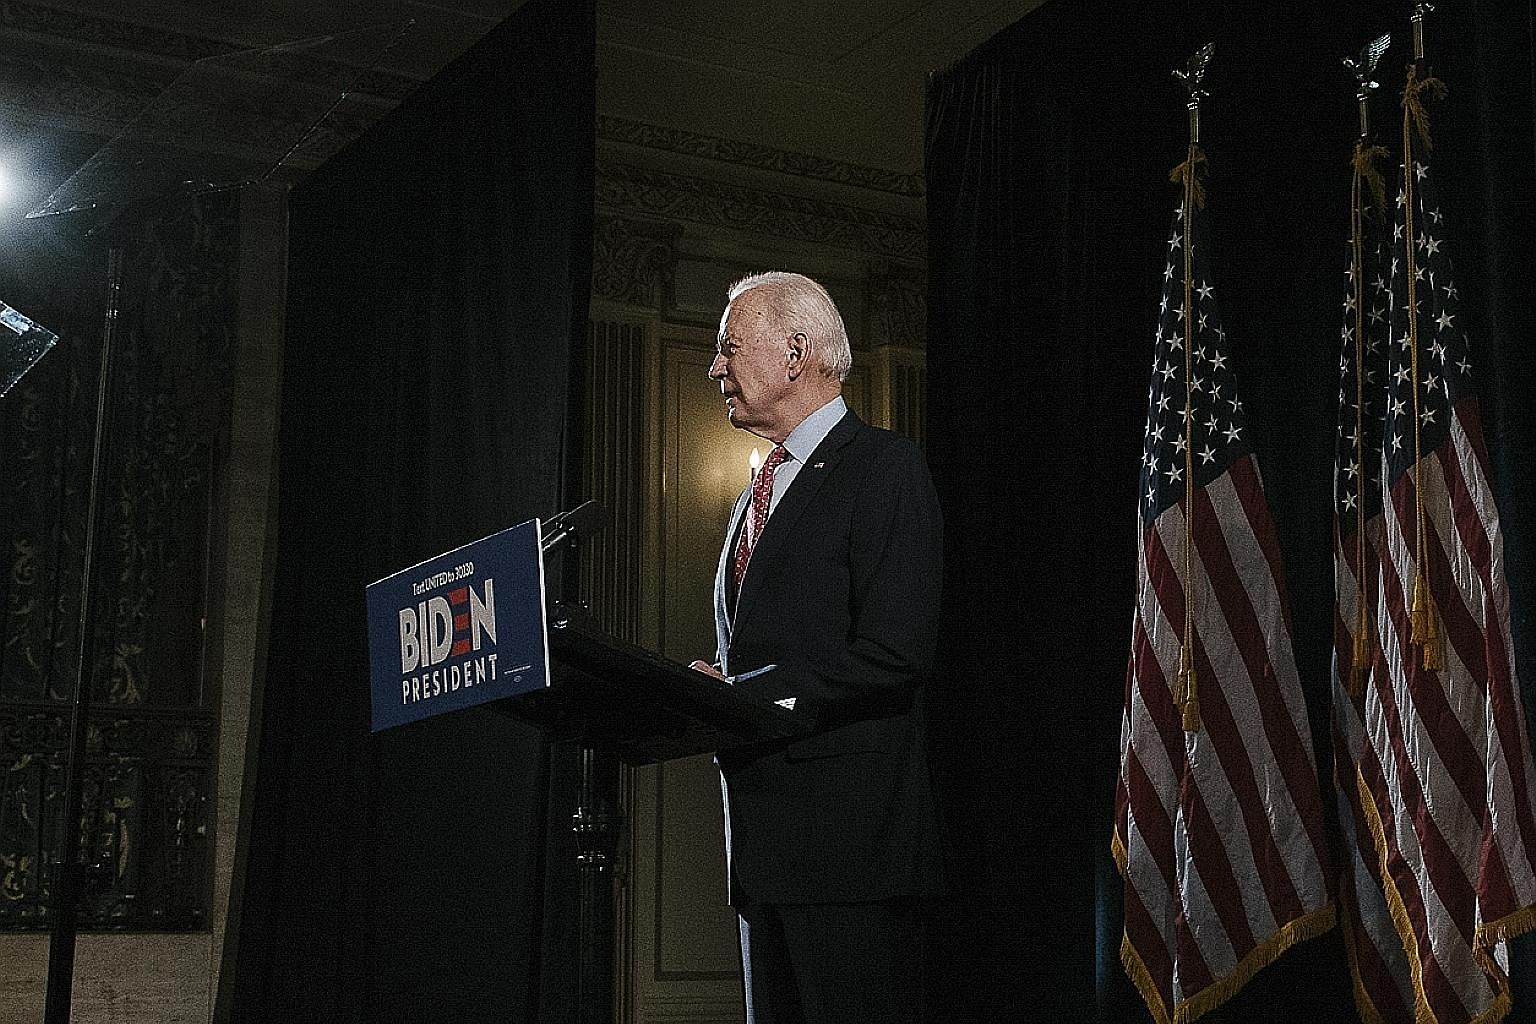 Democratic presidential front runner Joe Biden at a news conference on March 12. He said on Sunday that he has discussed his list of running mates with former president Barack Obama. PHOTO: NYTIMES